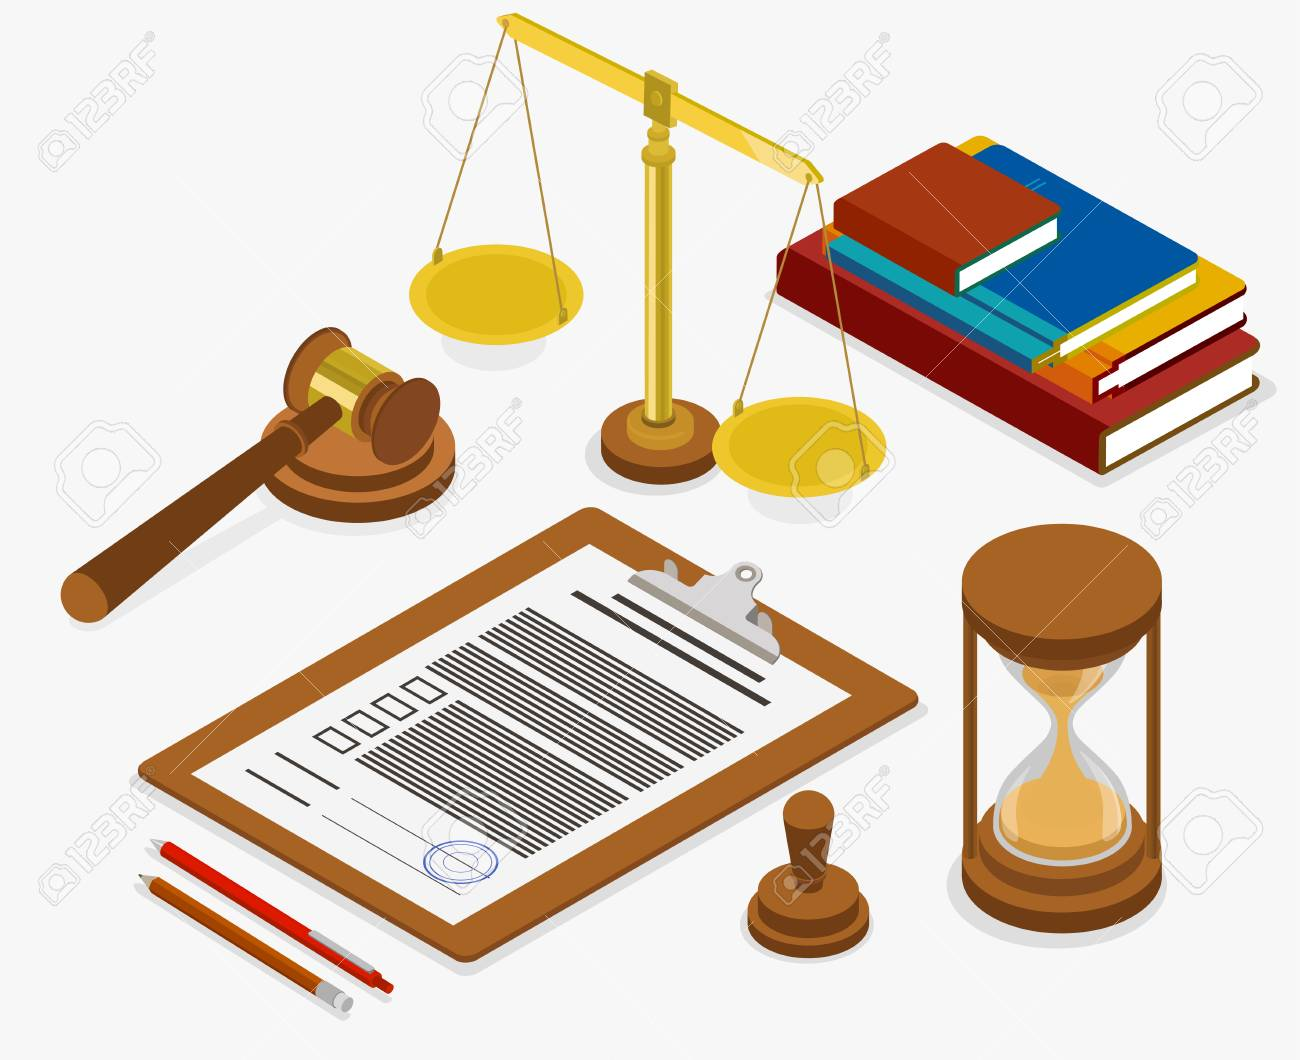 Workplace of judge or lawyer with documents. Isometric illustration on white background. Vector 3d design. - 103981931